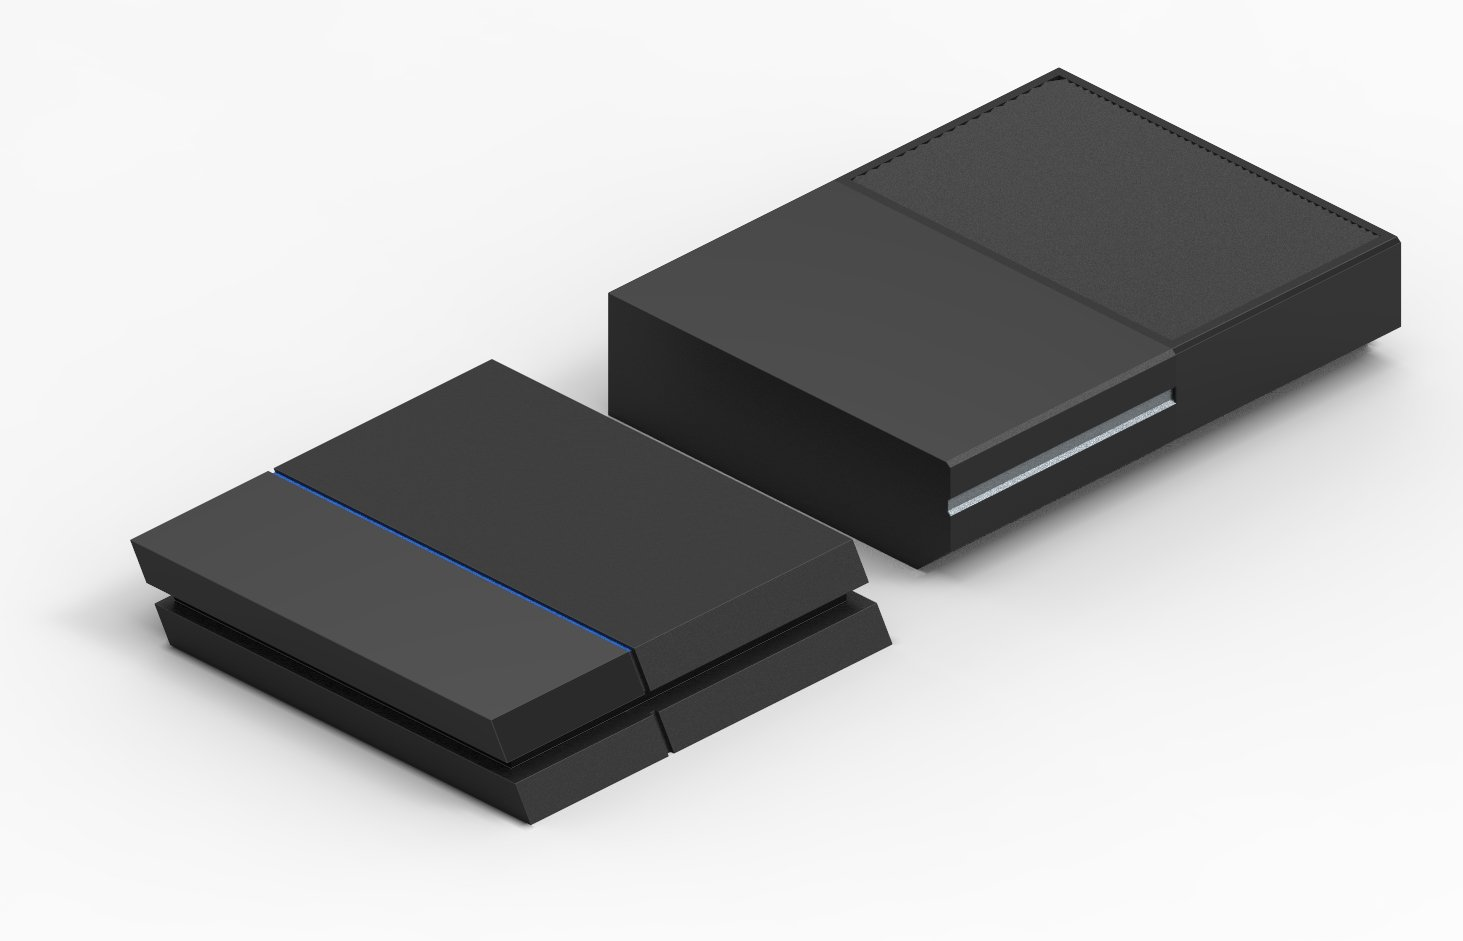 how to add fat external drive to ps4